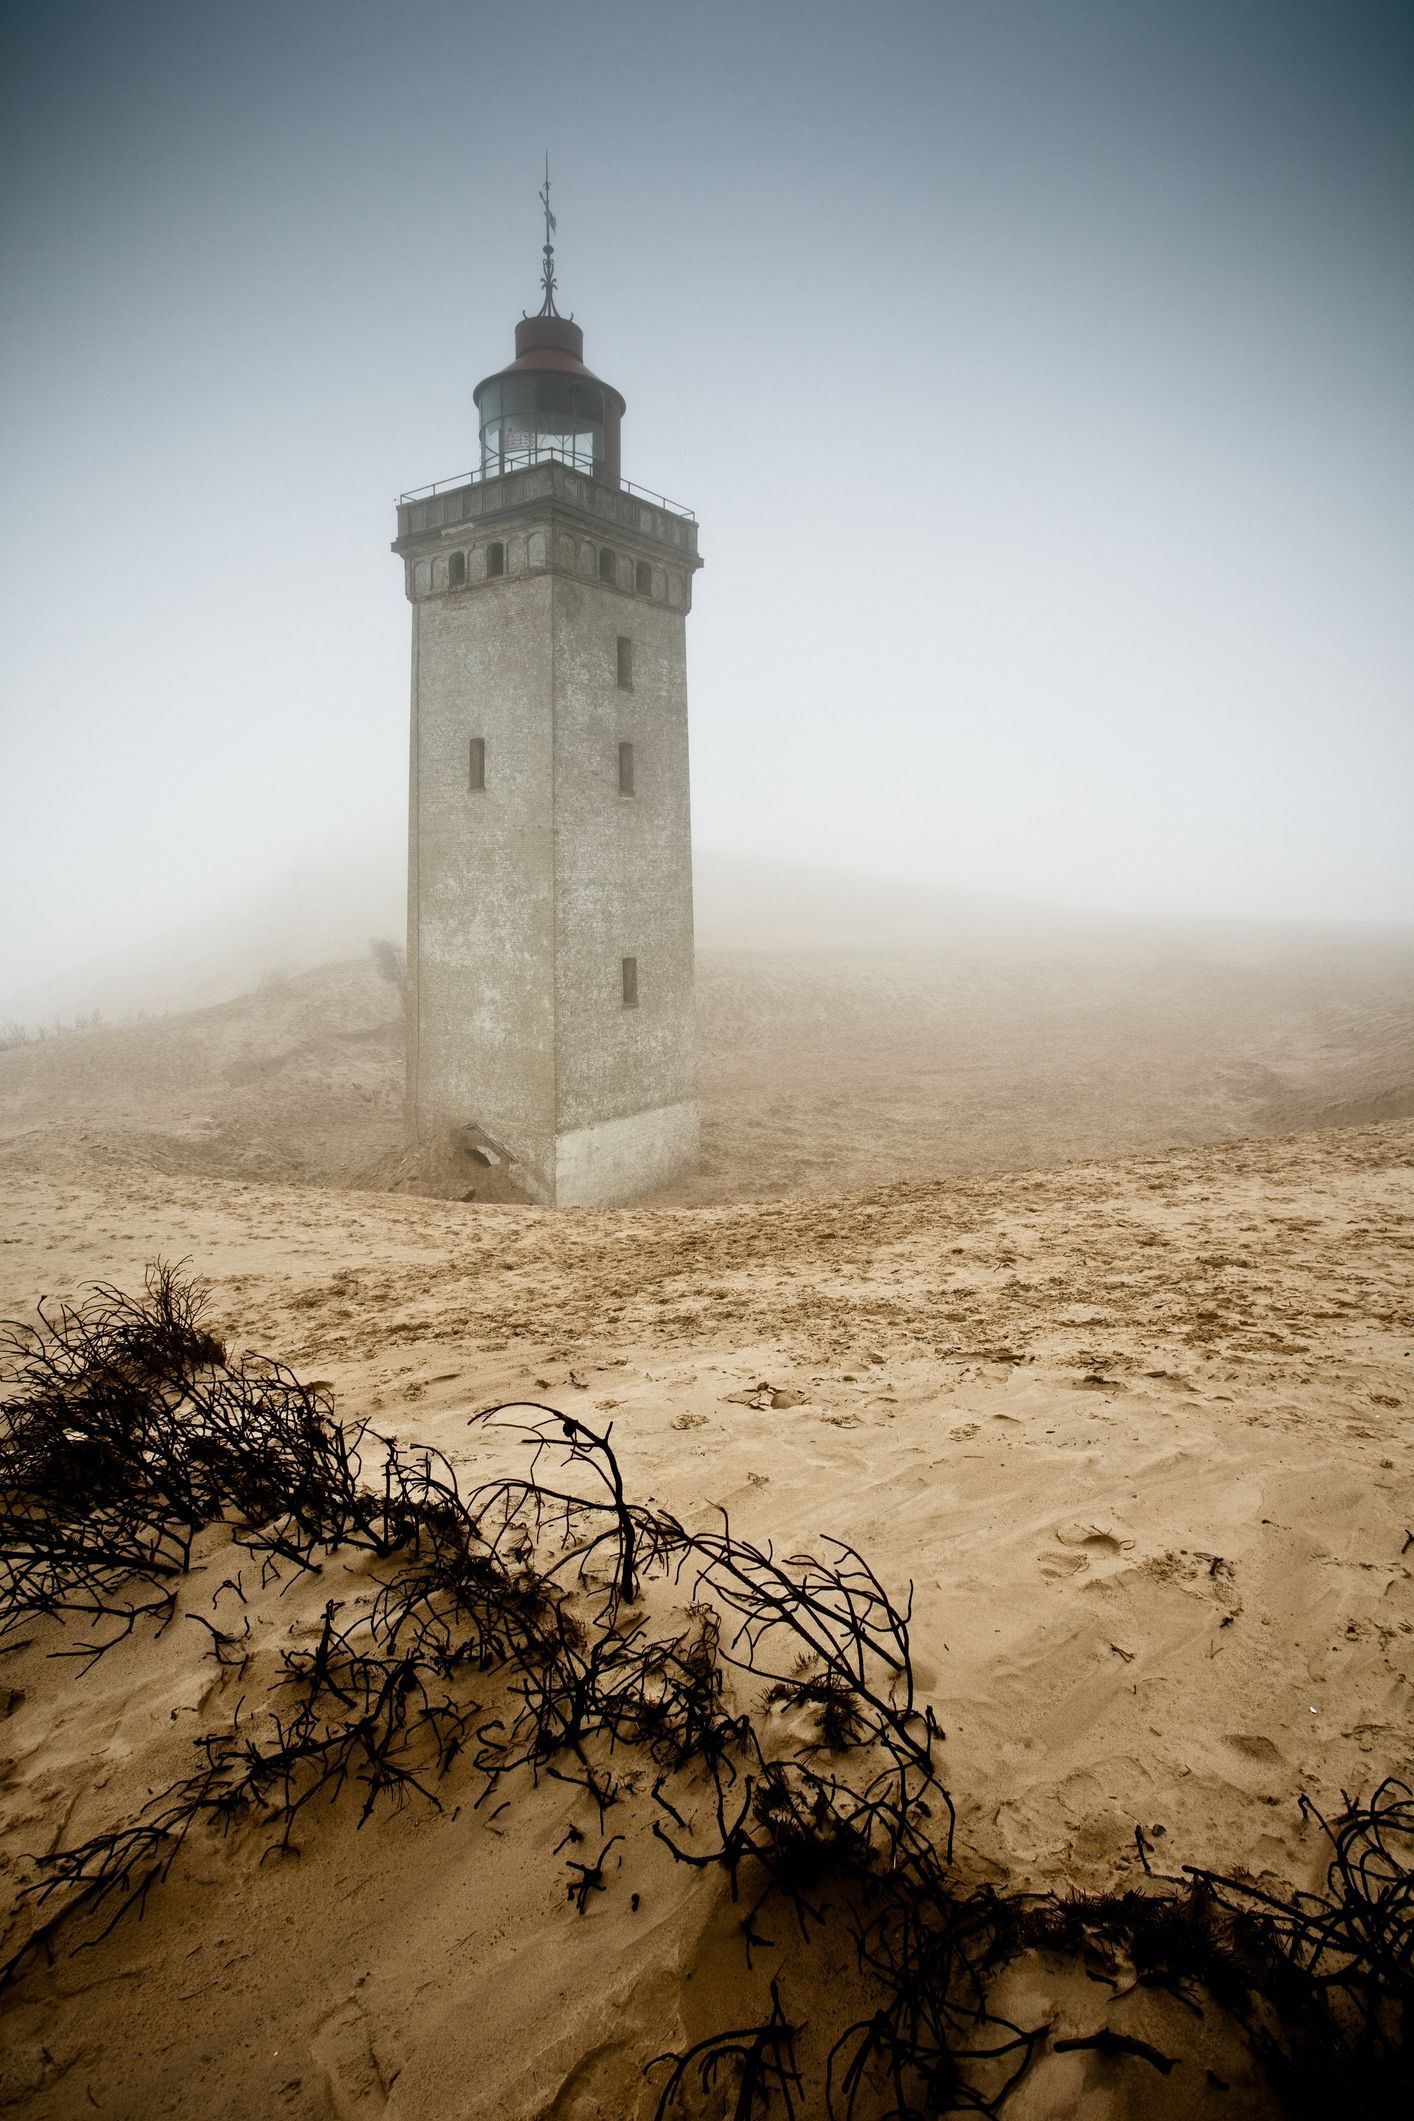 <p>When it became clear that if the sand dunes didn't completely engulf thiscentury-old structure first, it would eventually topple into the North Sea due to coastal erosion, the lighthouse was left to the elements. It is located on the northern coast of Denmark.</p>